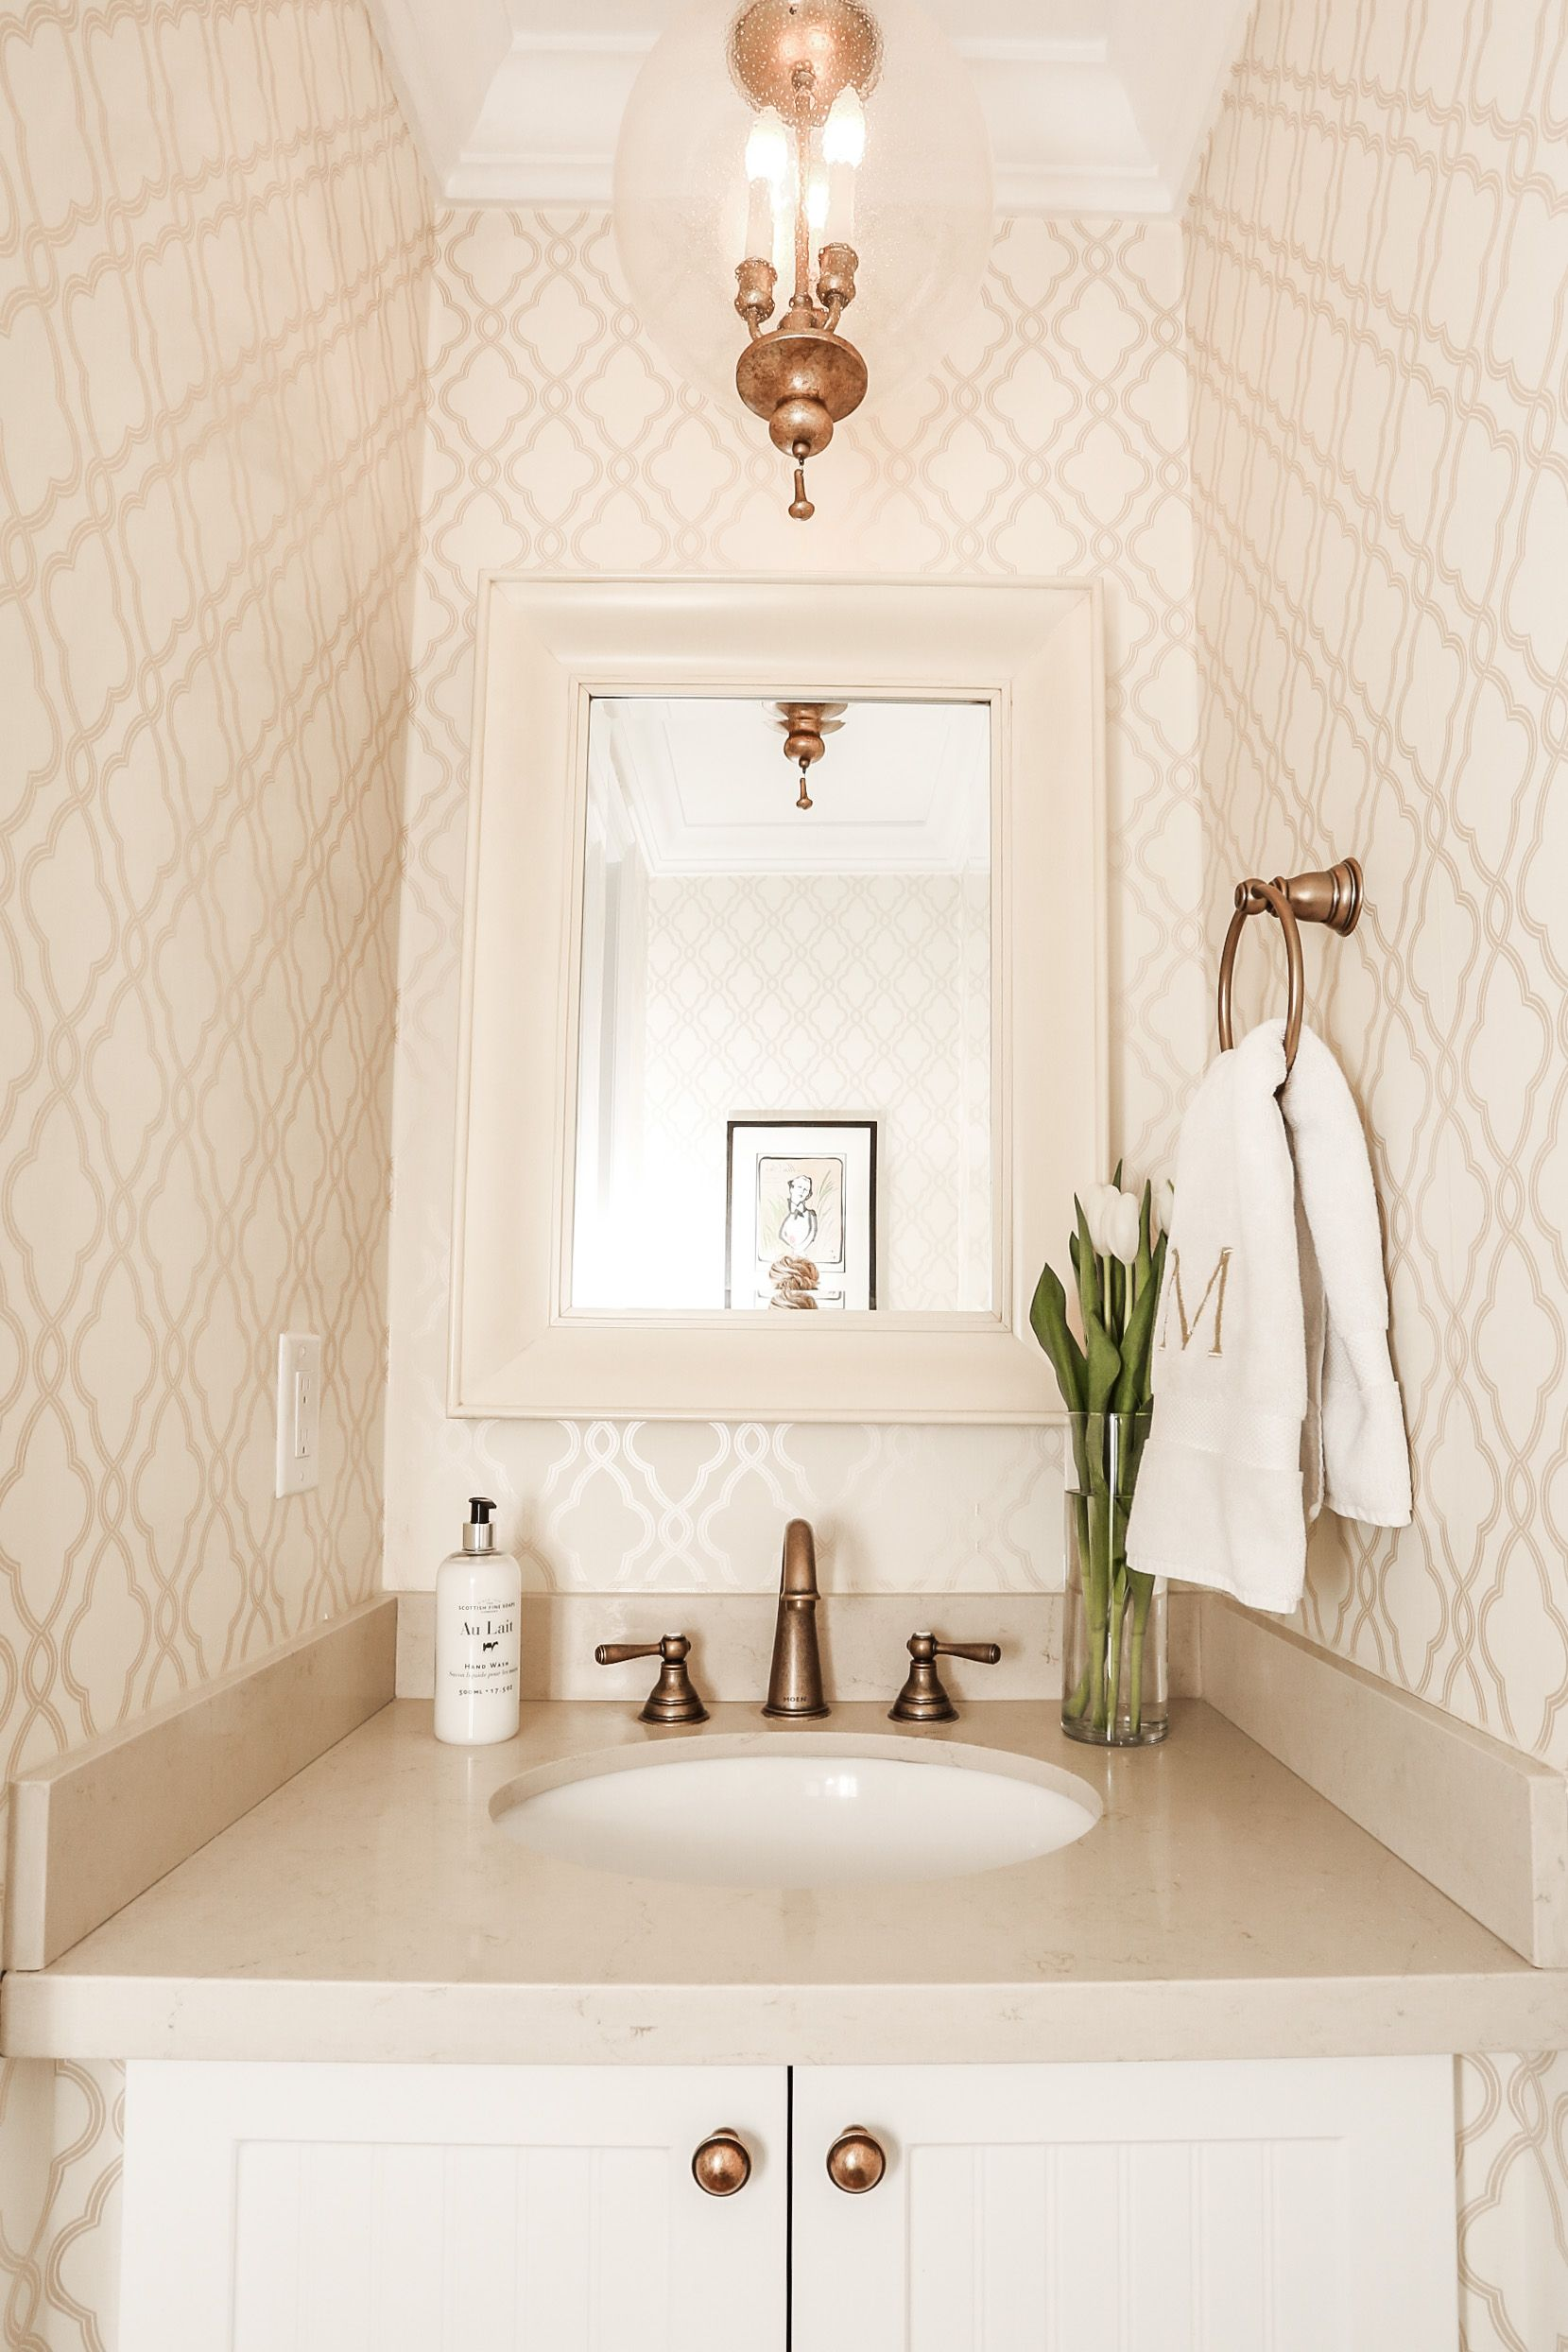 Beautiful And Simple, Love The Design Of This Powder Room